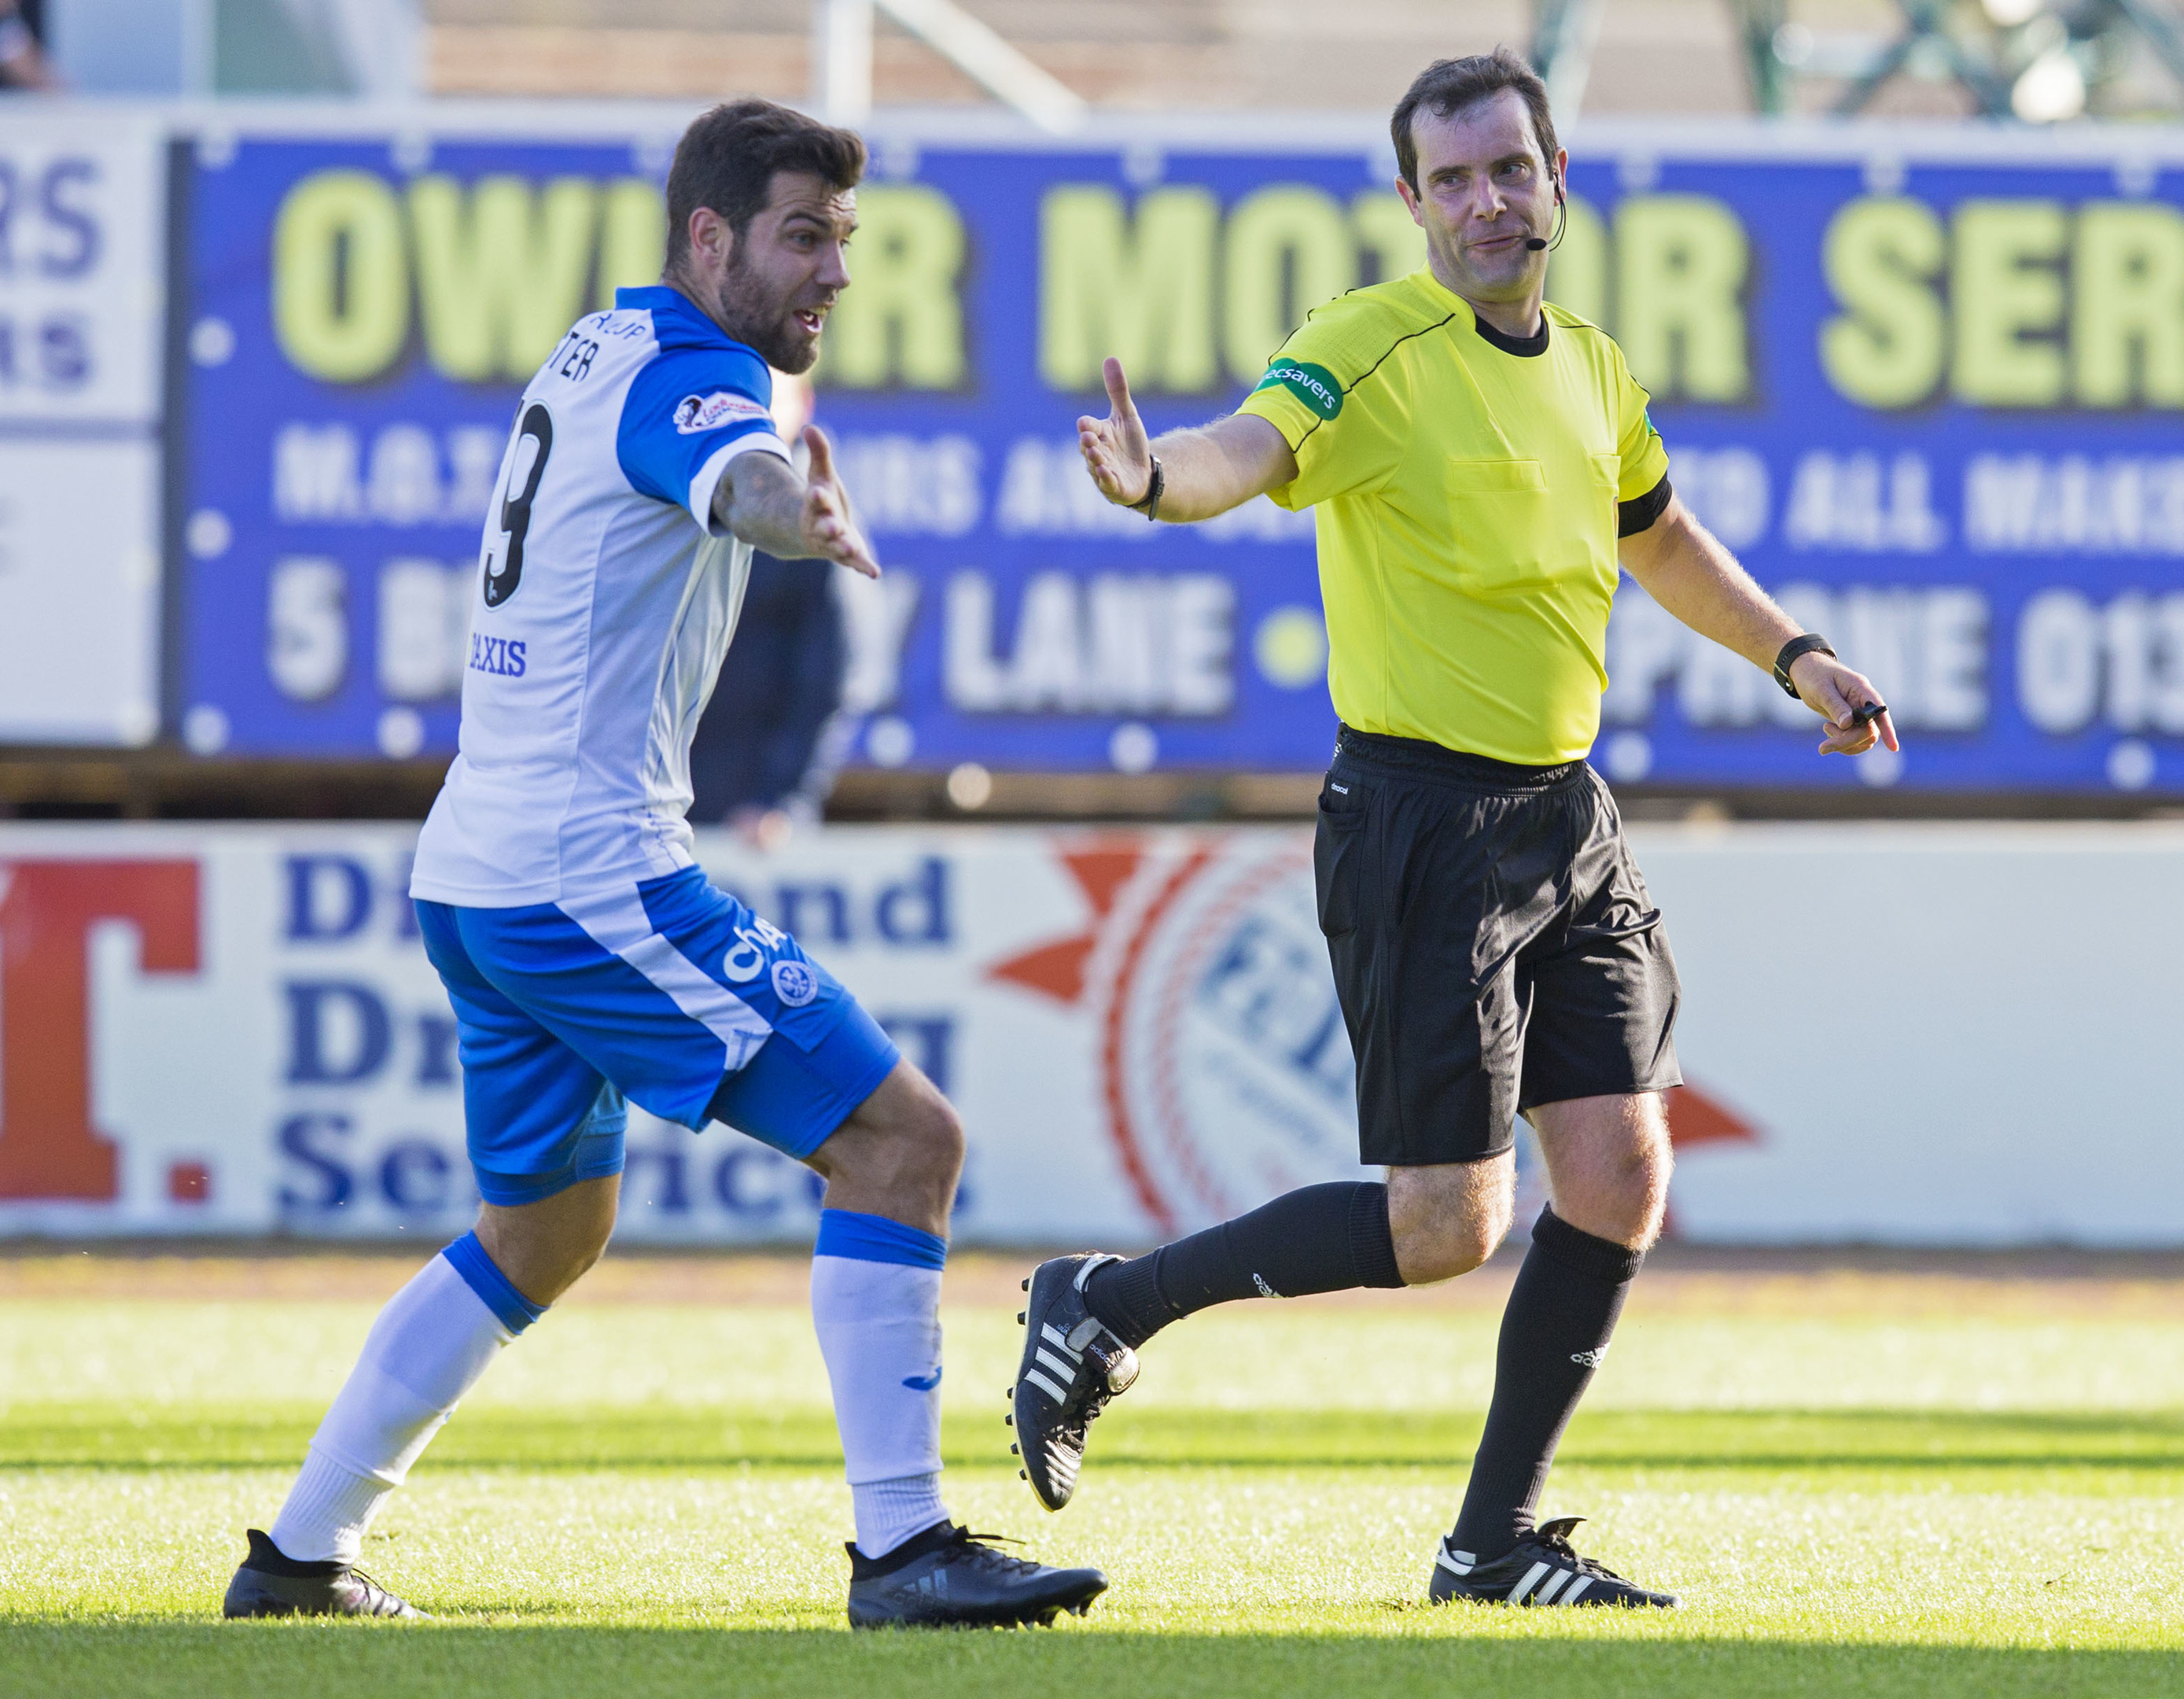 St Johnstone's Richard Foster speaks with referee Alan Muir after a penalty is awarded against him.